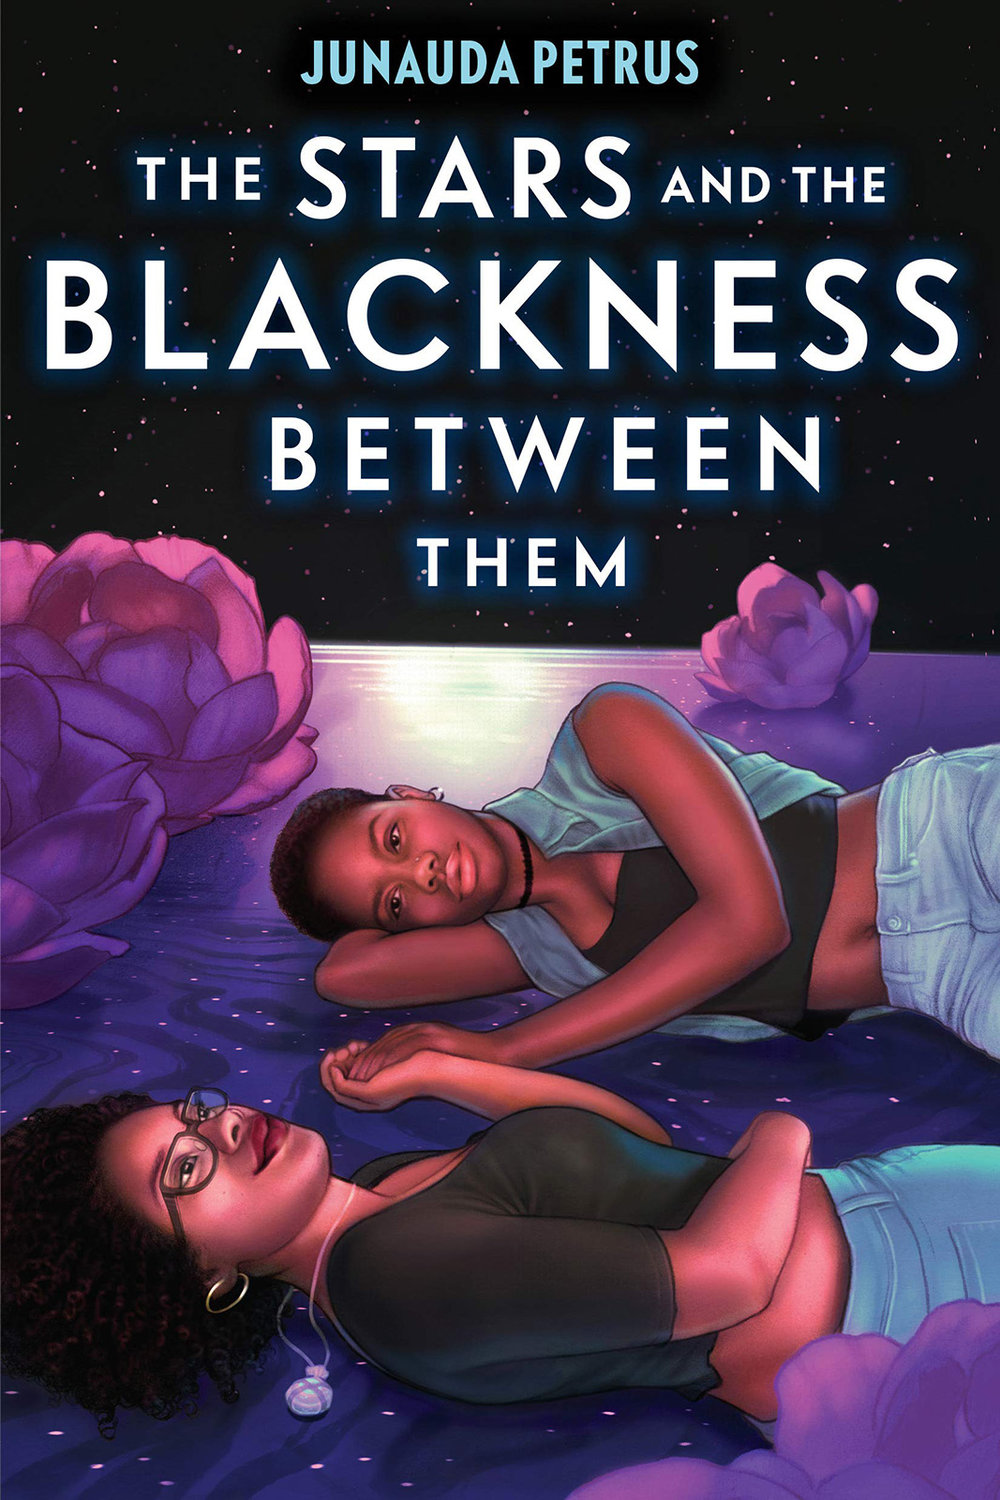 """The Stars and the Blackness Between Them"" by Junauda Petrus. (Dutton Books for Young Readers/Amazon/TNS)"